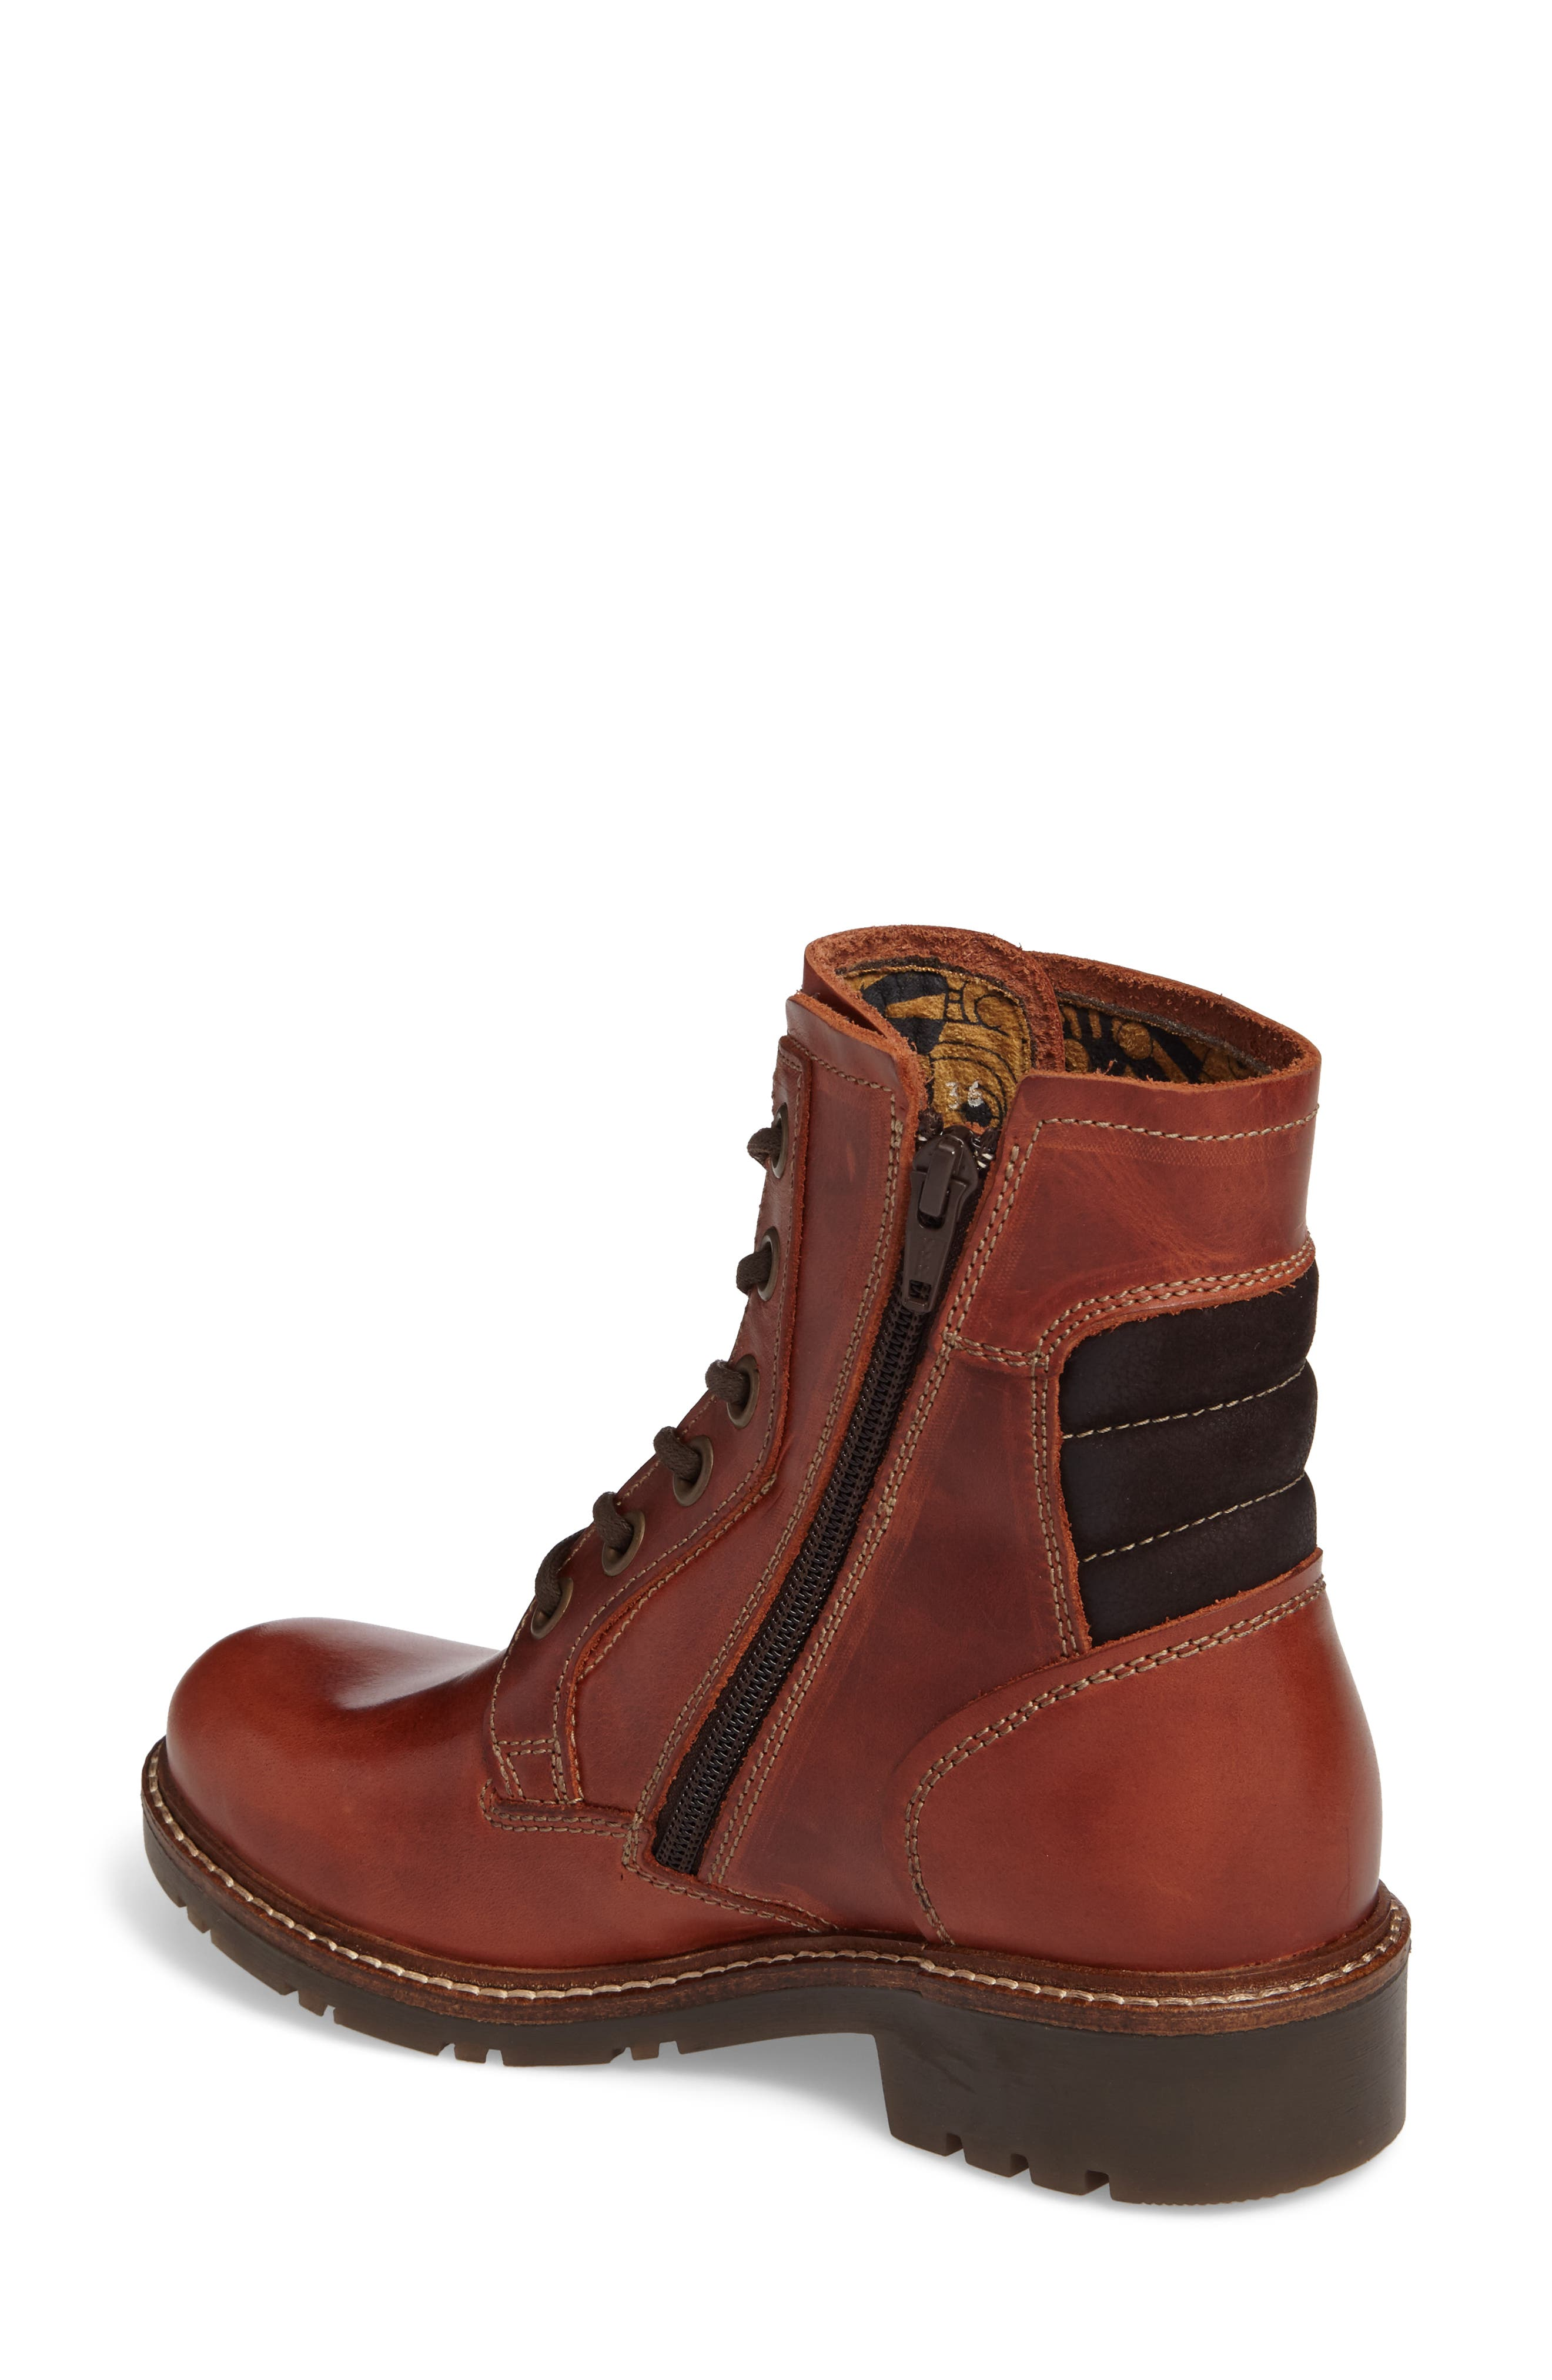 Silo Waterproof Gore-Tex<sup>®</sup> Boot,                             Alternate thumbnail 2, color,                             Brick Leather